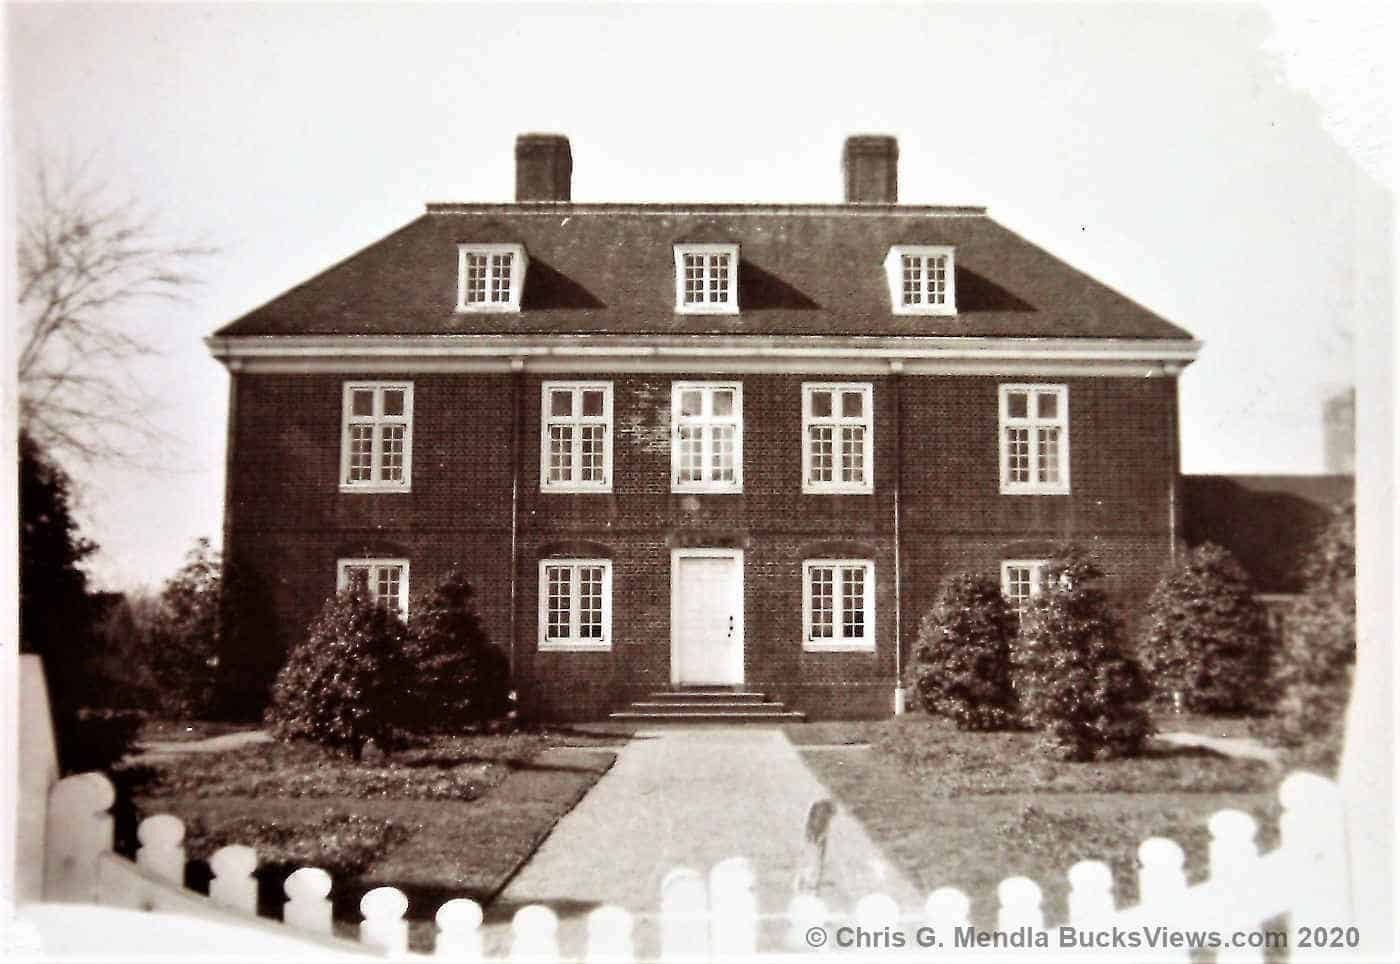 Pennsbury Manor - Front view - 1950's